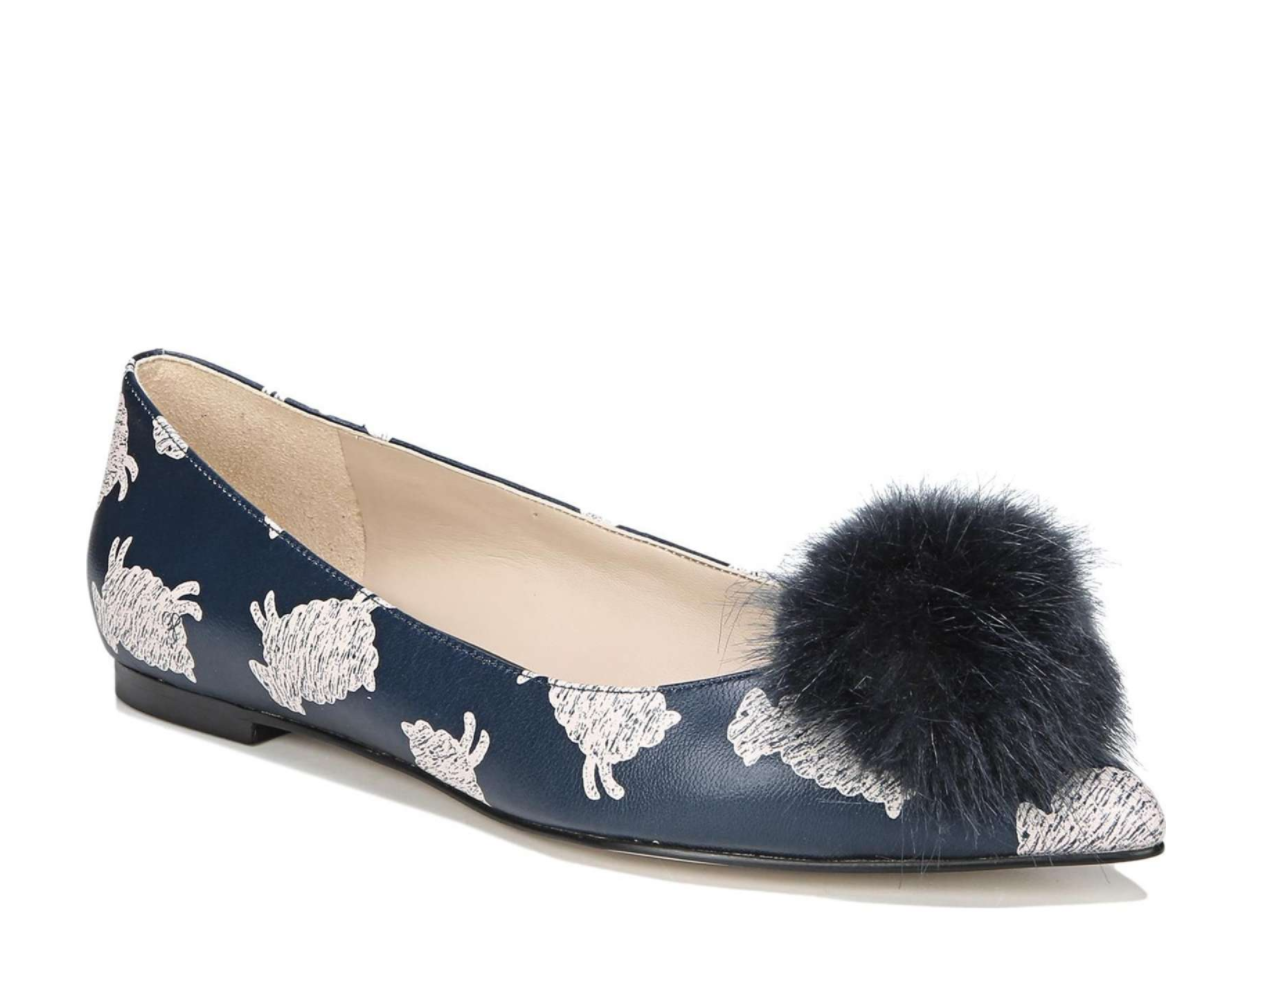 The season of stylish flats is here! Fall shoe love: Sam Edelman Raddie Faux Fur Pompom Flat | glitterinc.com | @glitterinc